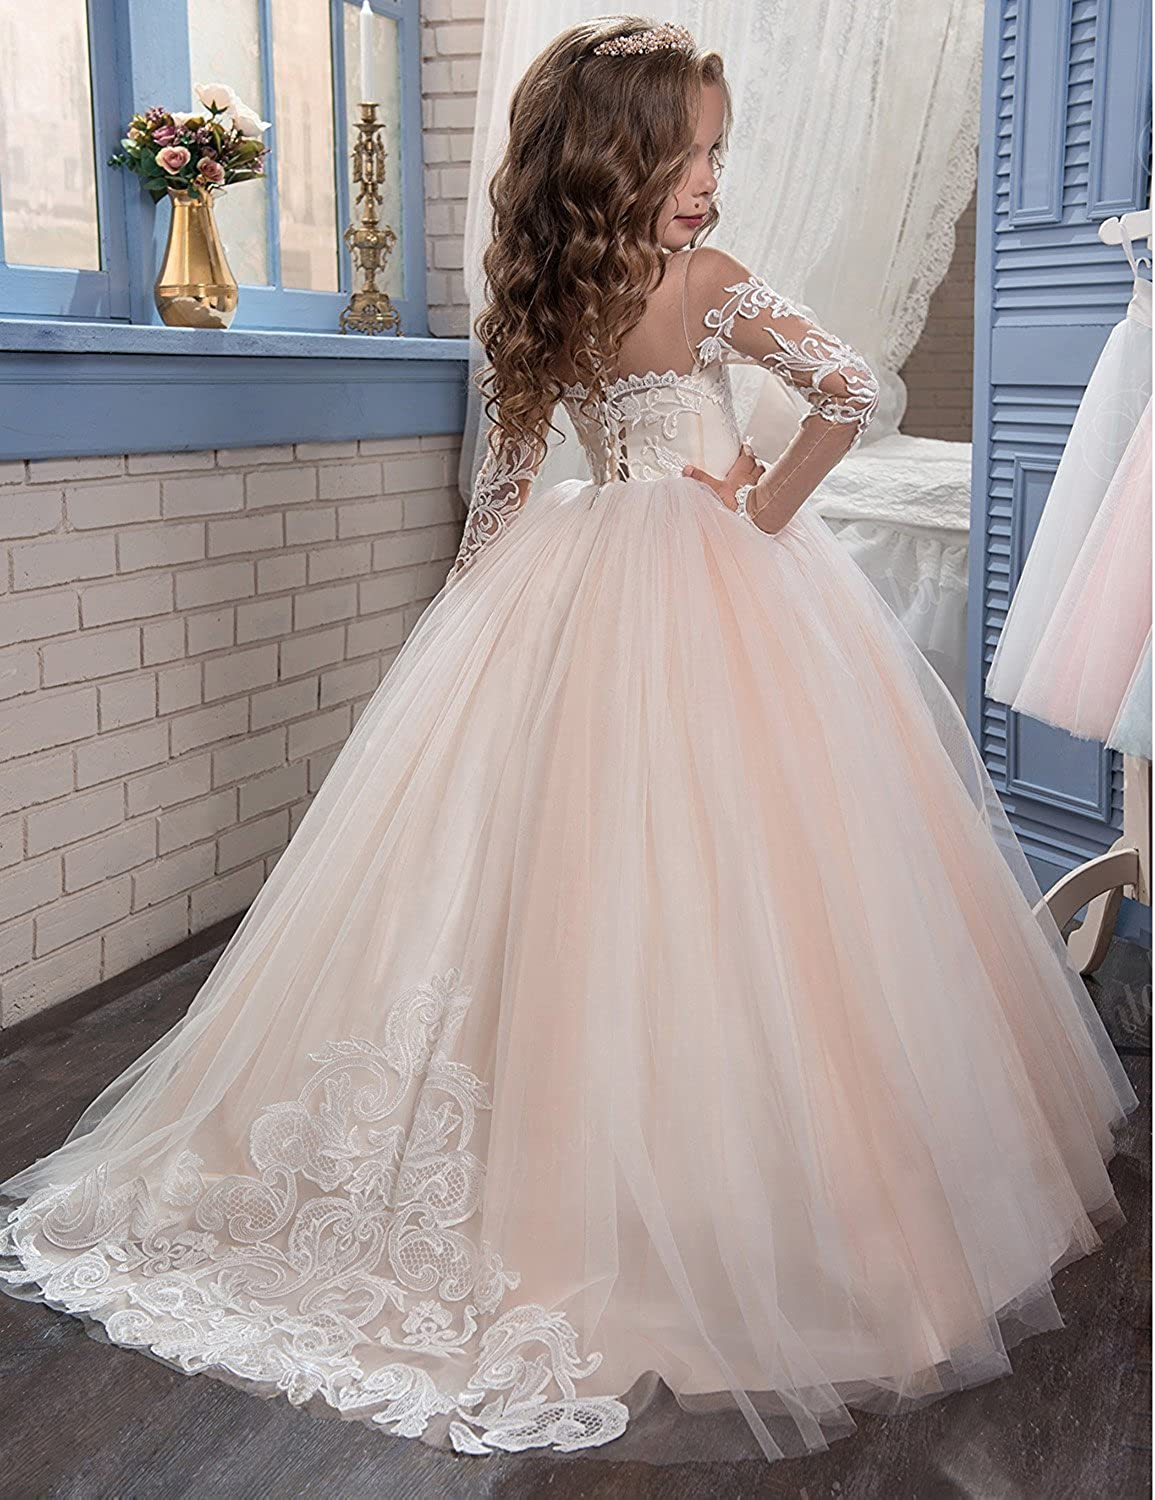 7af4e4b79c Amazon.com  Flower Girl Dresses Long Sleeves Lace Champagne Vintage  Communion Gowns  Clothing